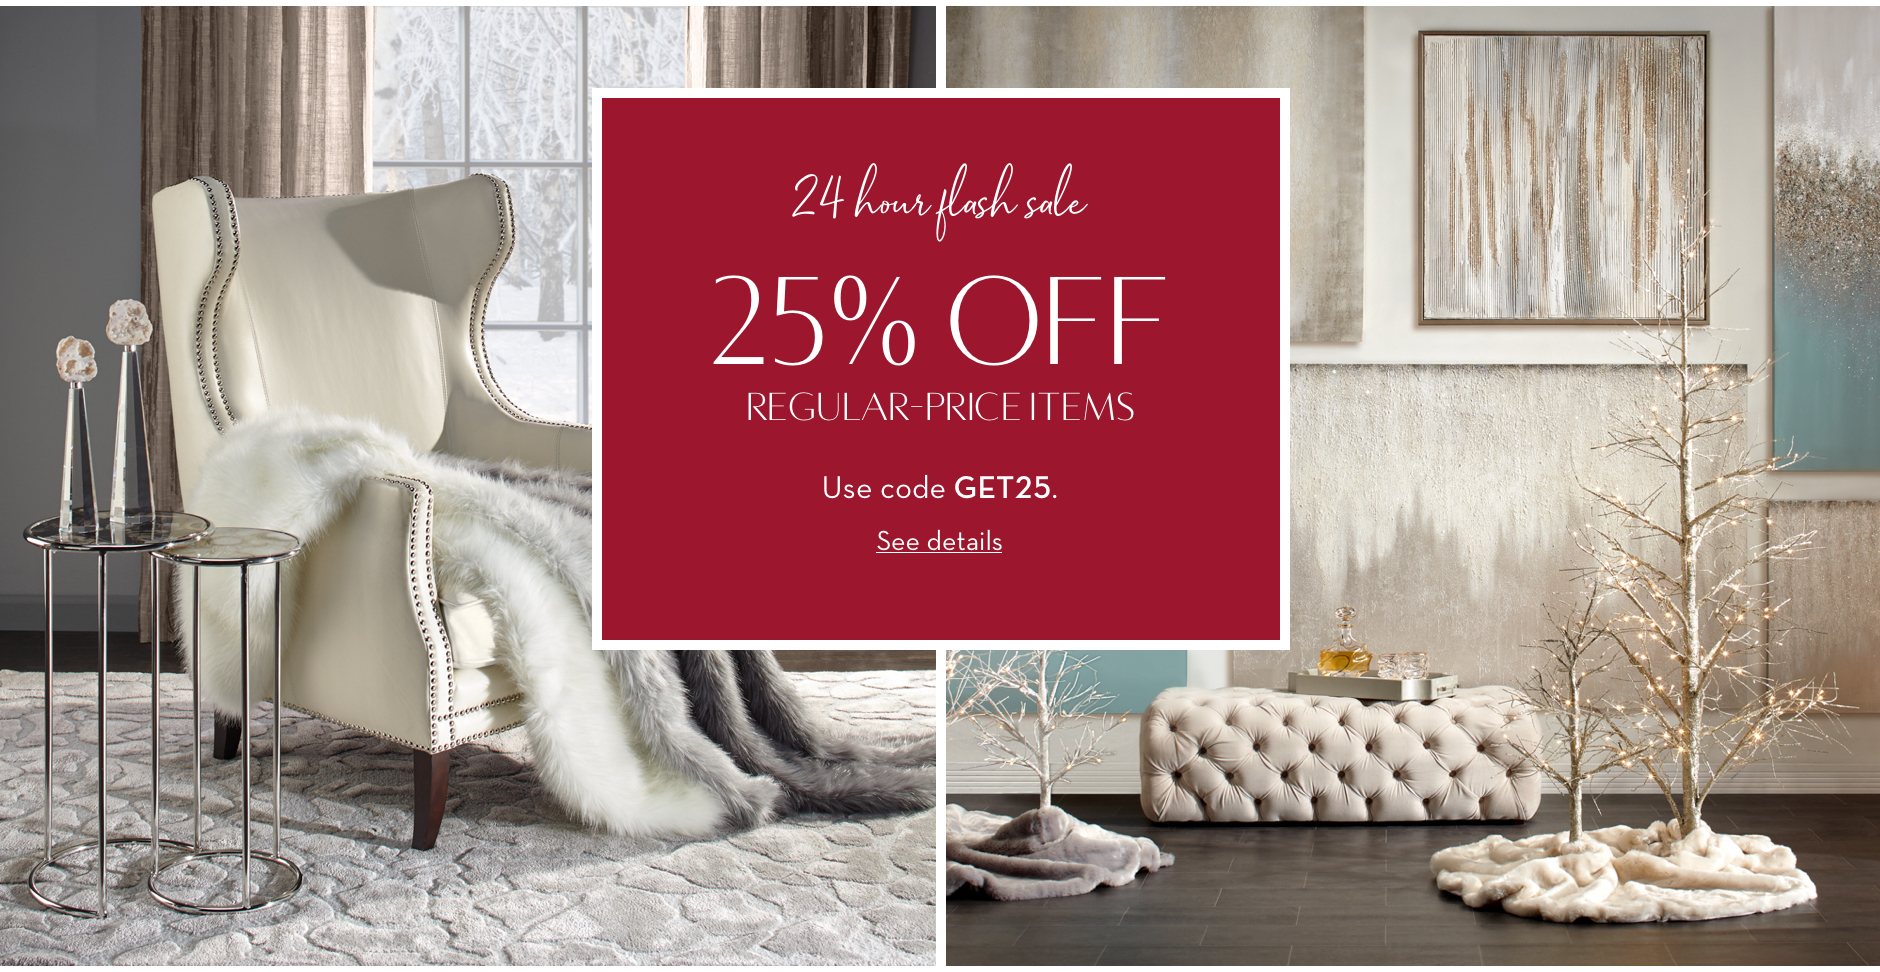 Save on home decor - Limited Time